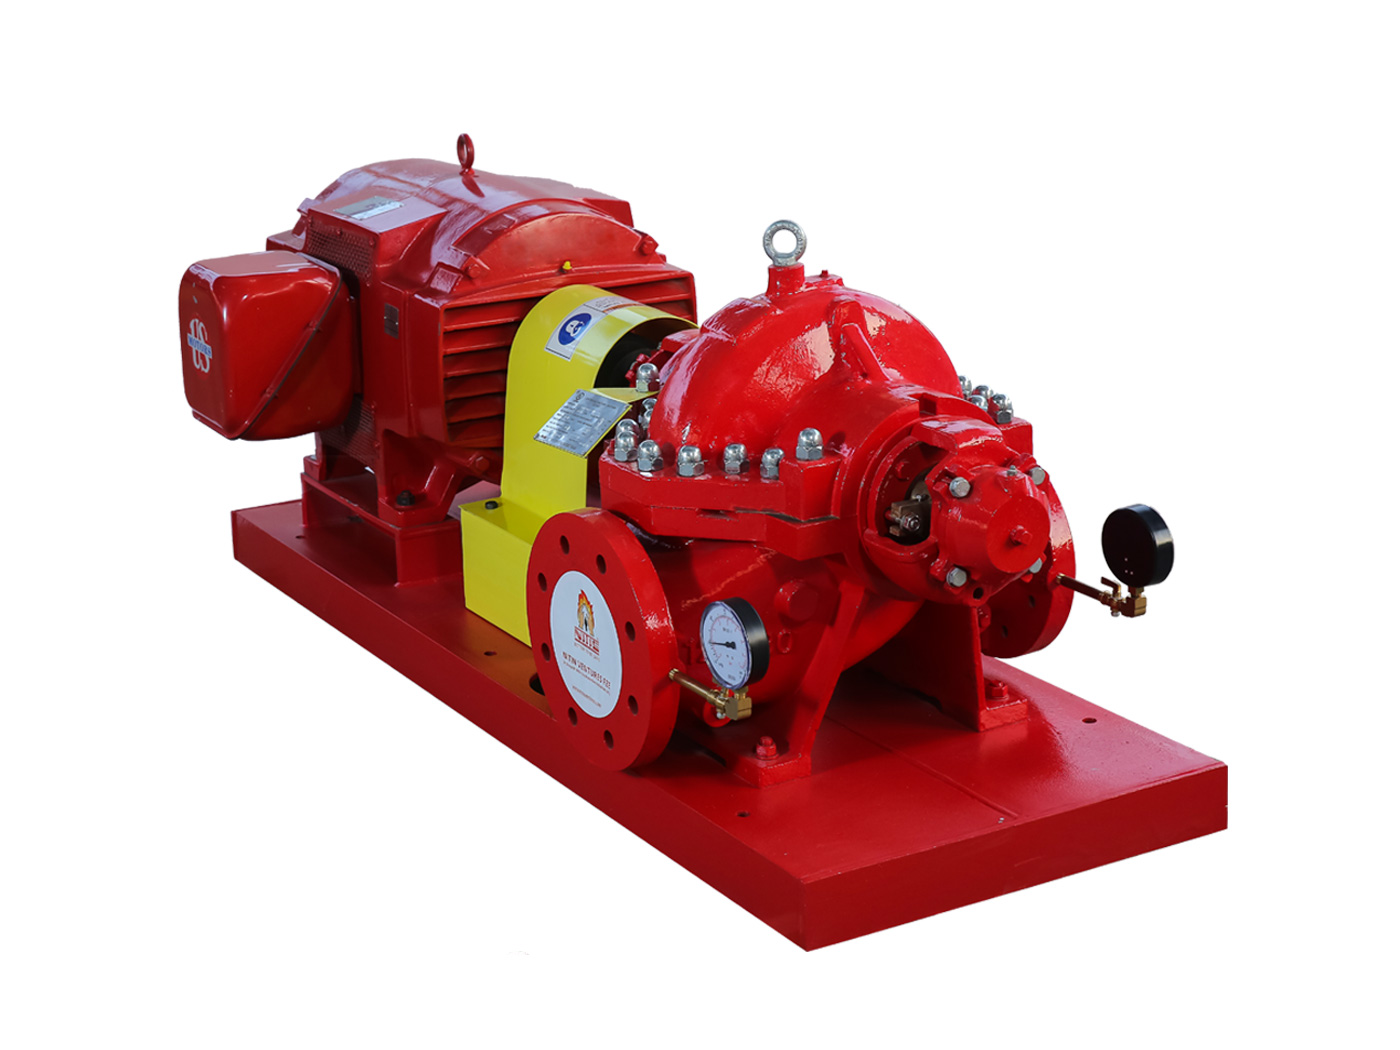 UL & FM Approved Fire Pumps